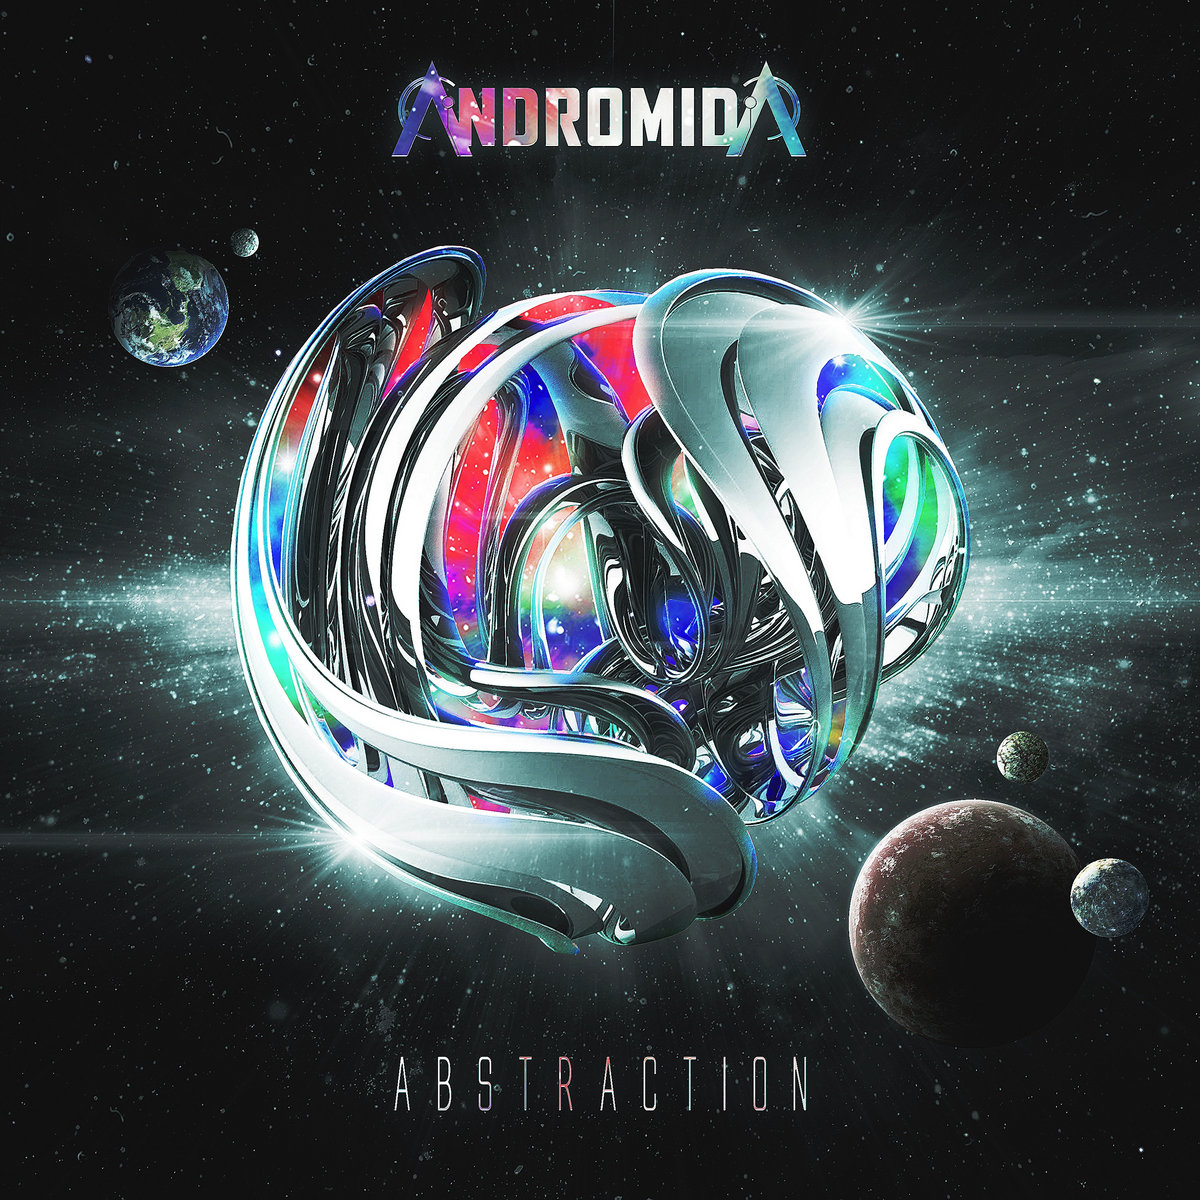 Abstraction by Andromida